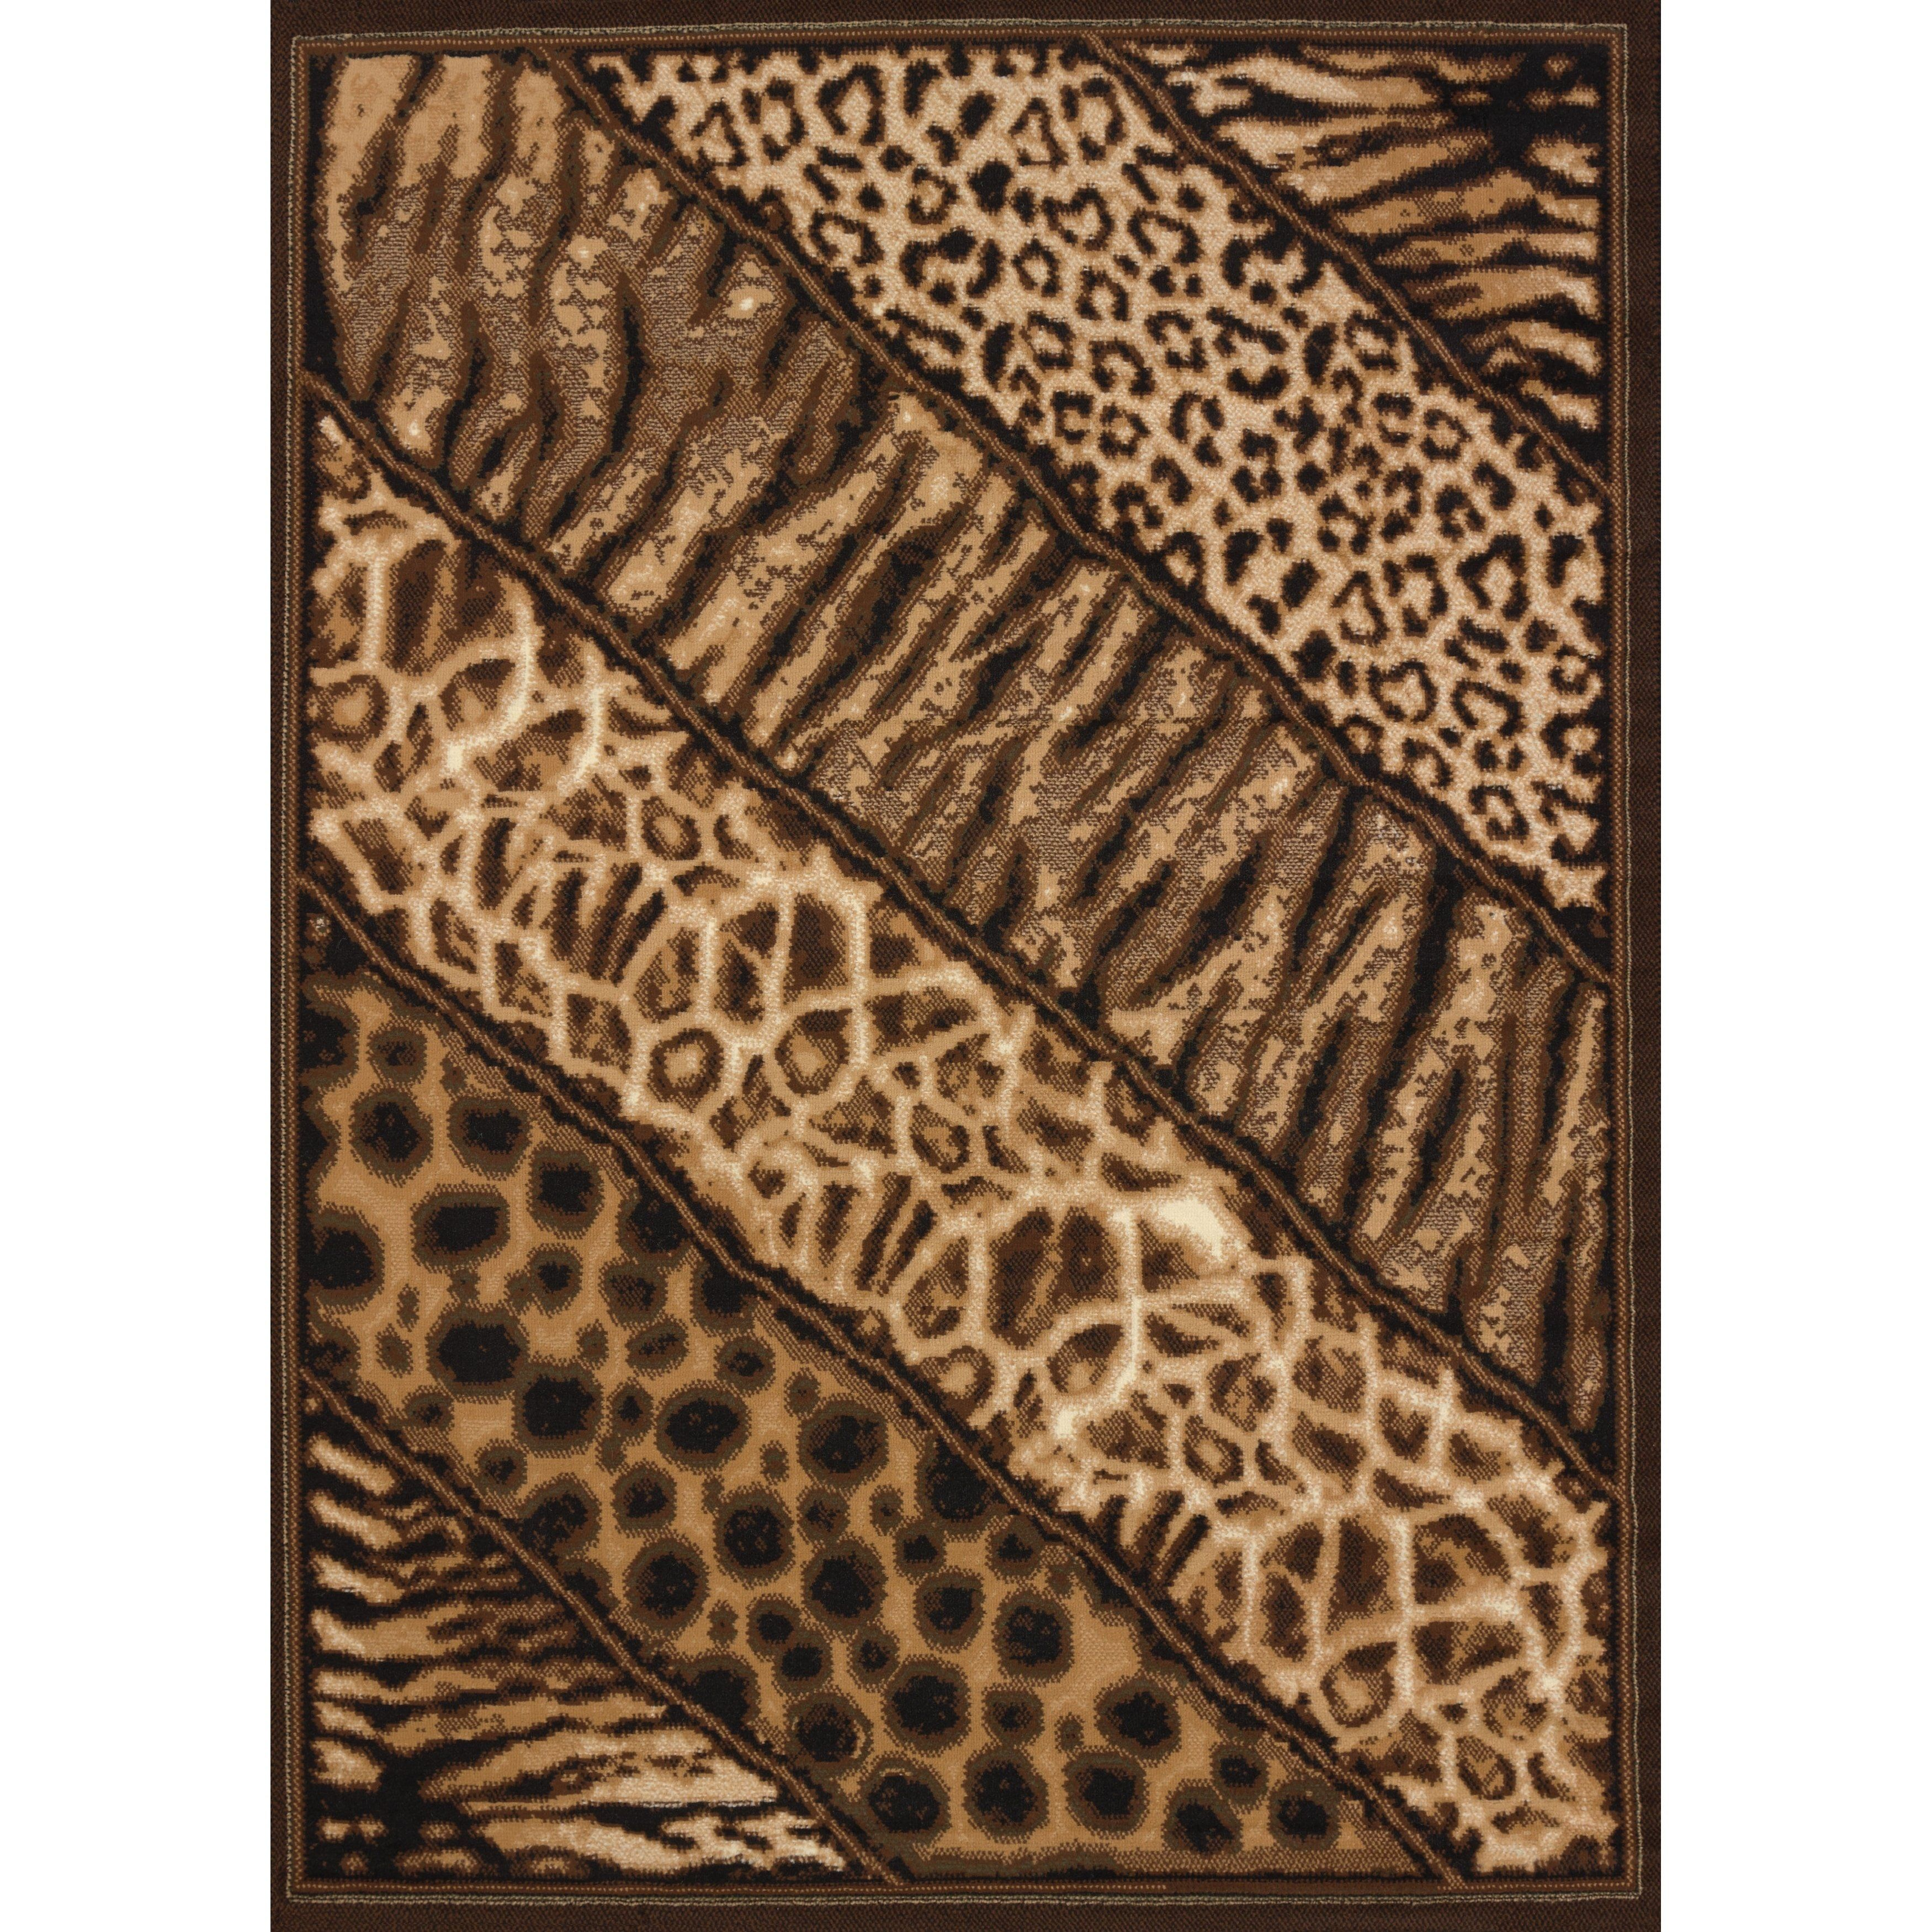 Pin By Linda Burch On Animal Print Stuff Area Rugs United Weavers Of America Modern Area Rugs